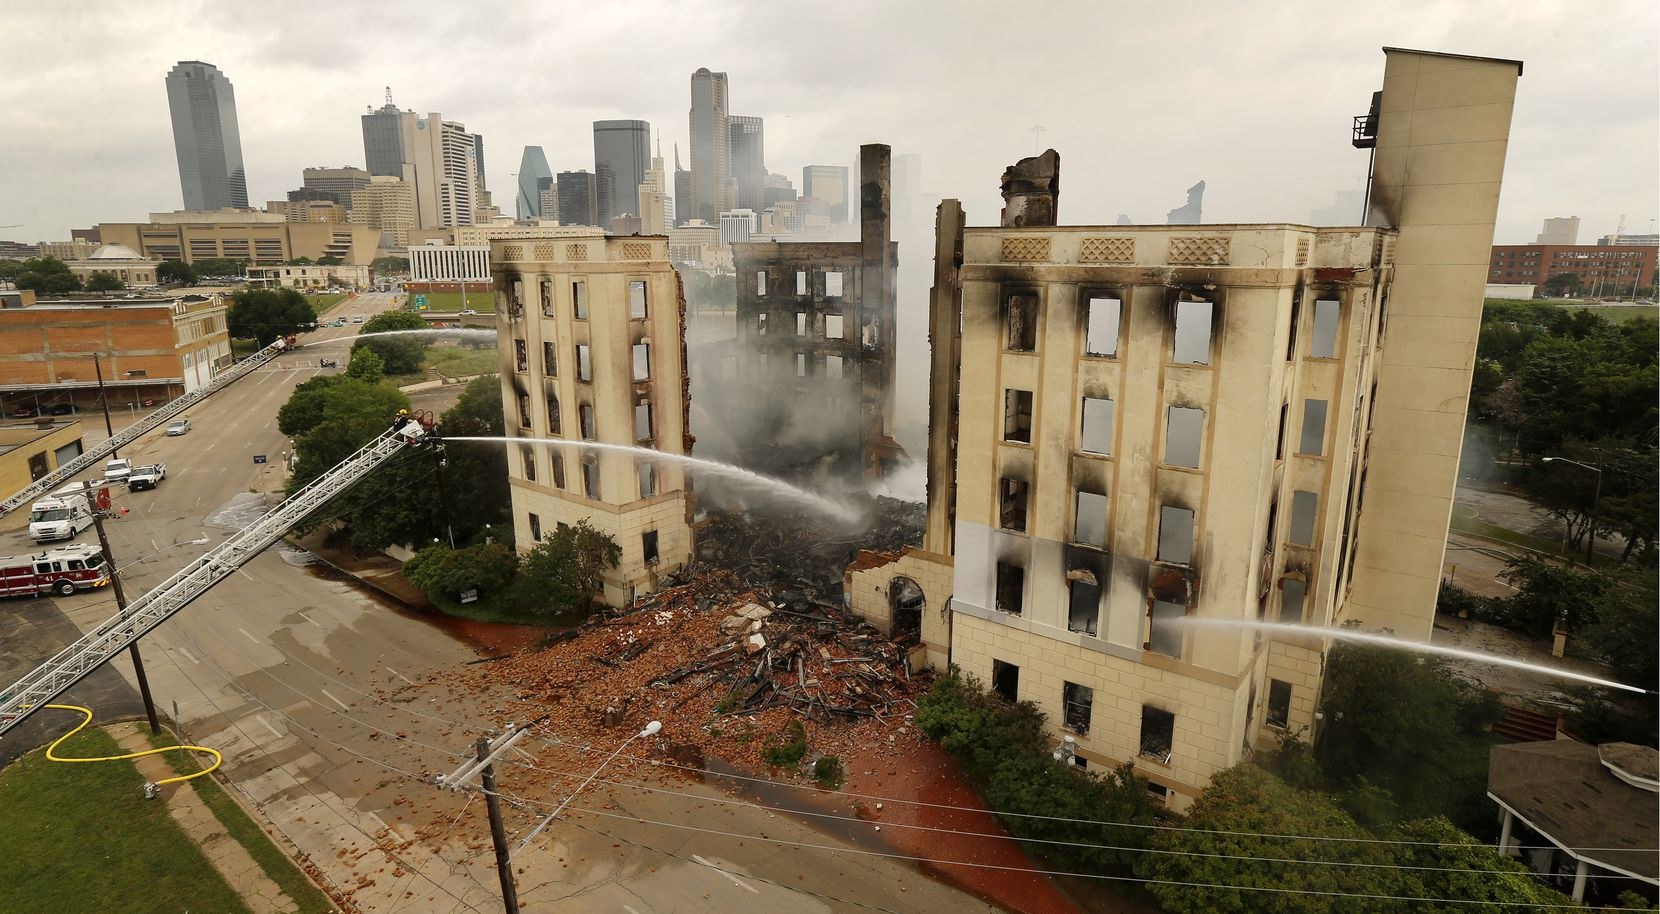 Dallas firefighters poured water on the historic Ambassador hotel just south of downtown Dallas.